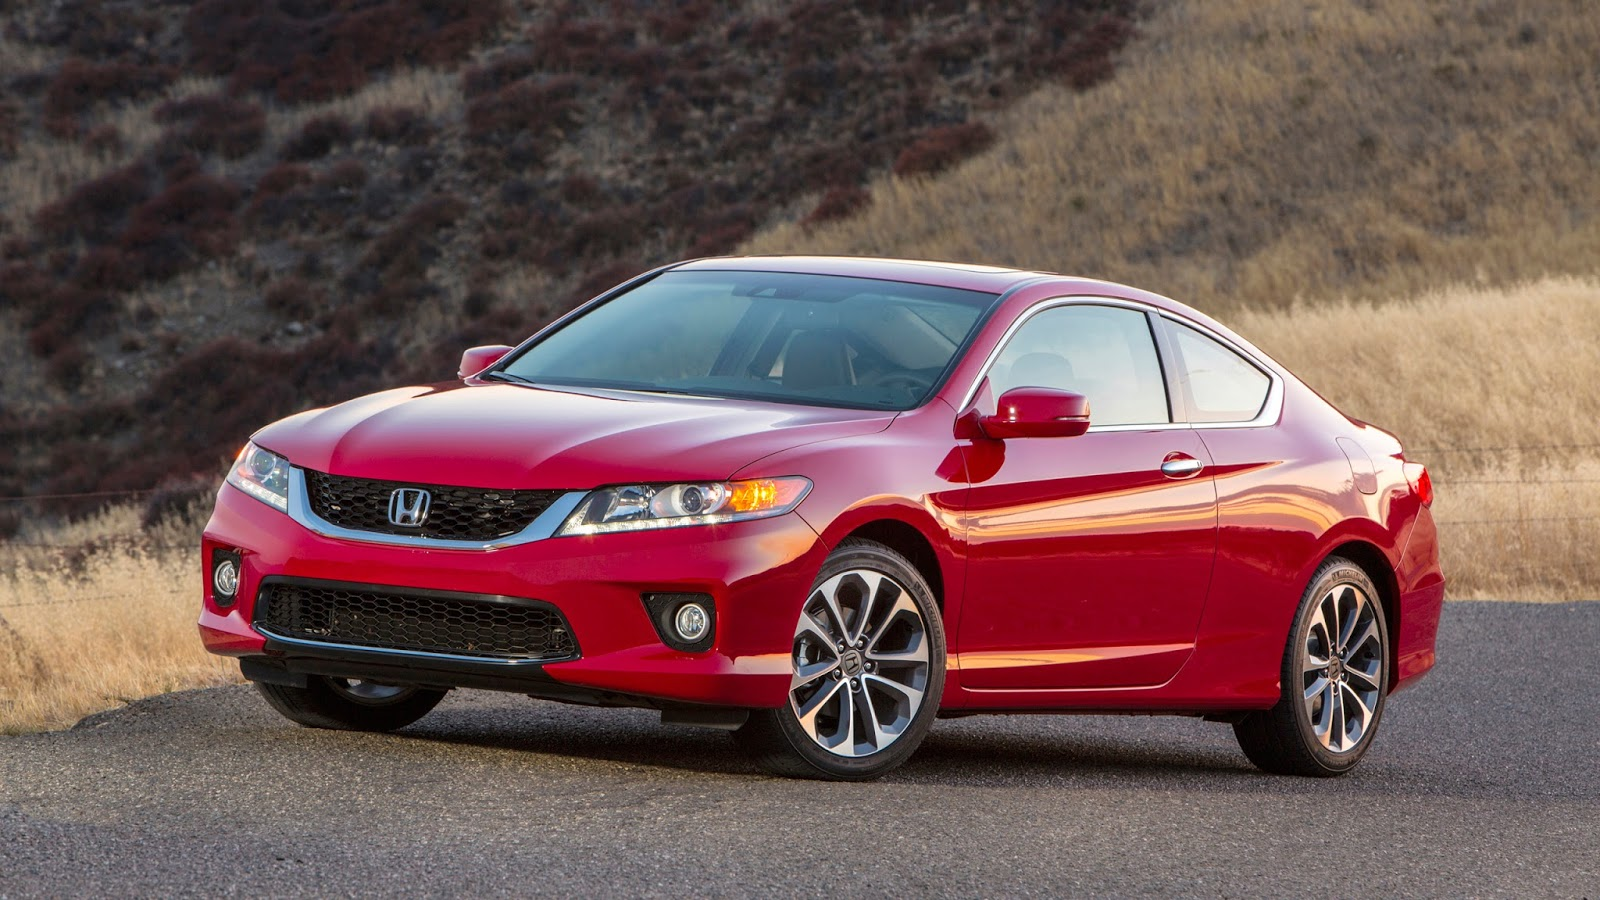 Using The Most High Strength Steel In The Modelu0027s History, The 2013 Honda  Accord Sedan And Coupe Bodies Combine Sophisticated And Athletic Styling  With ...